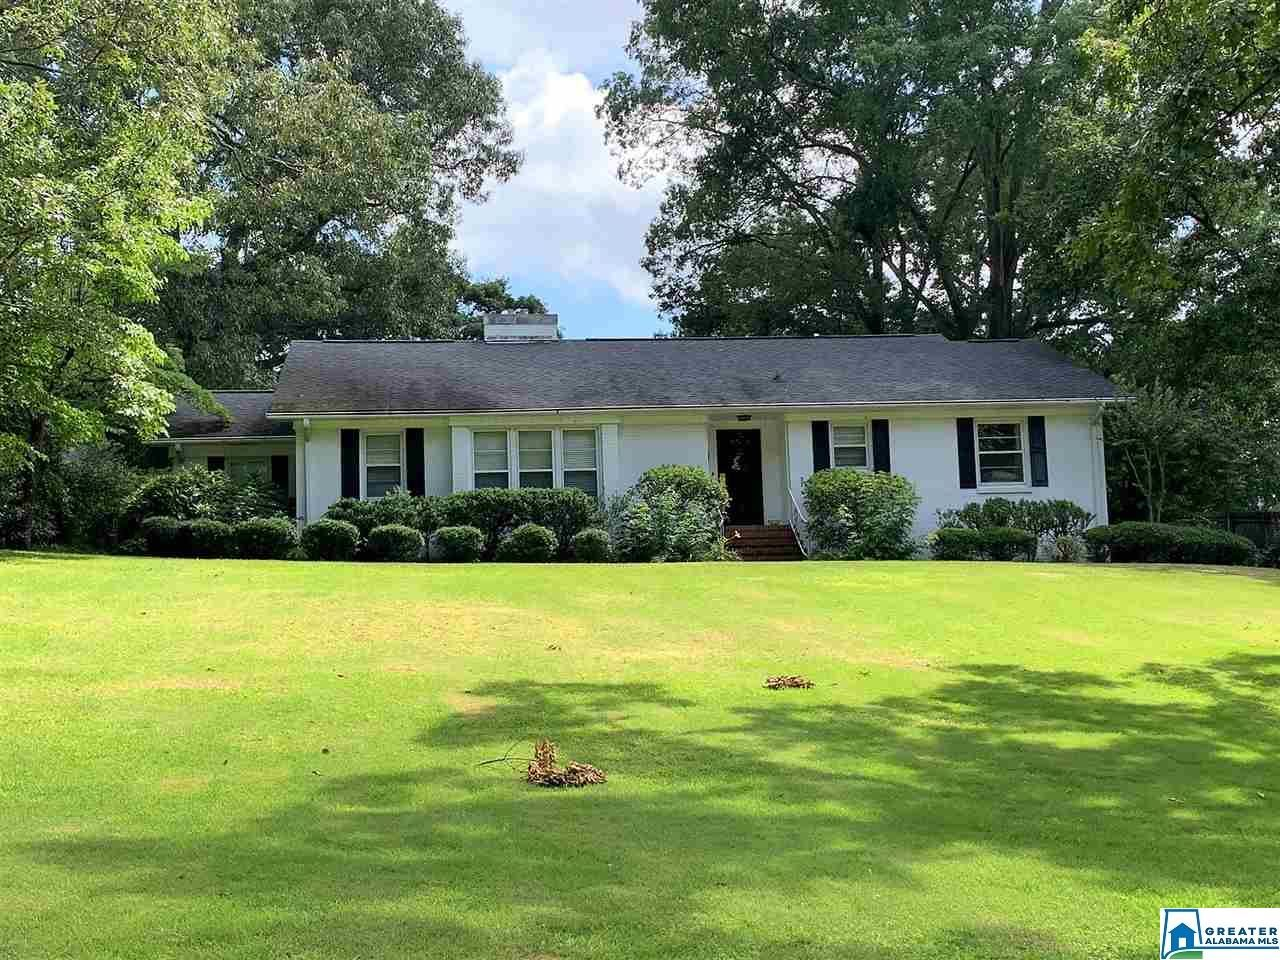 1412 GLENWOOD TERR, Anniston, AL 36207 - MLS#: 887546